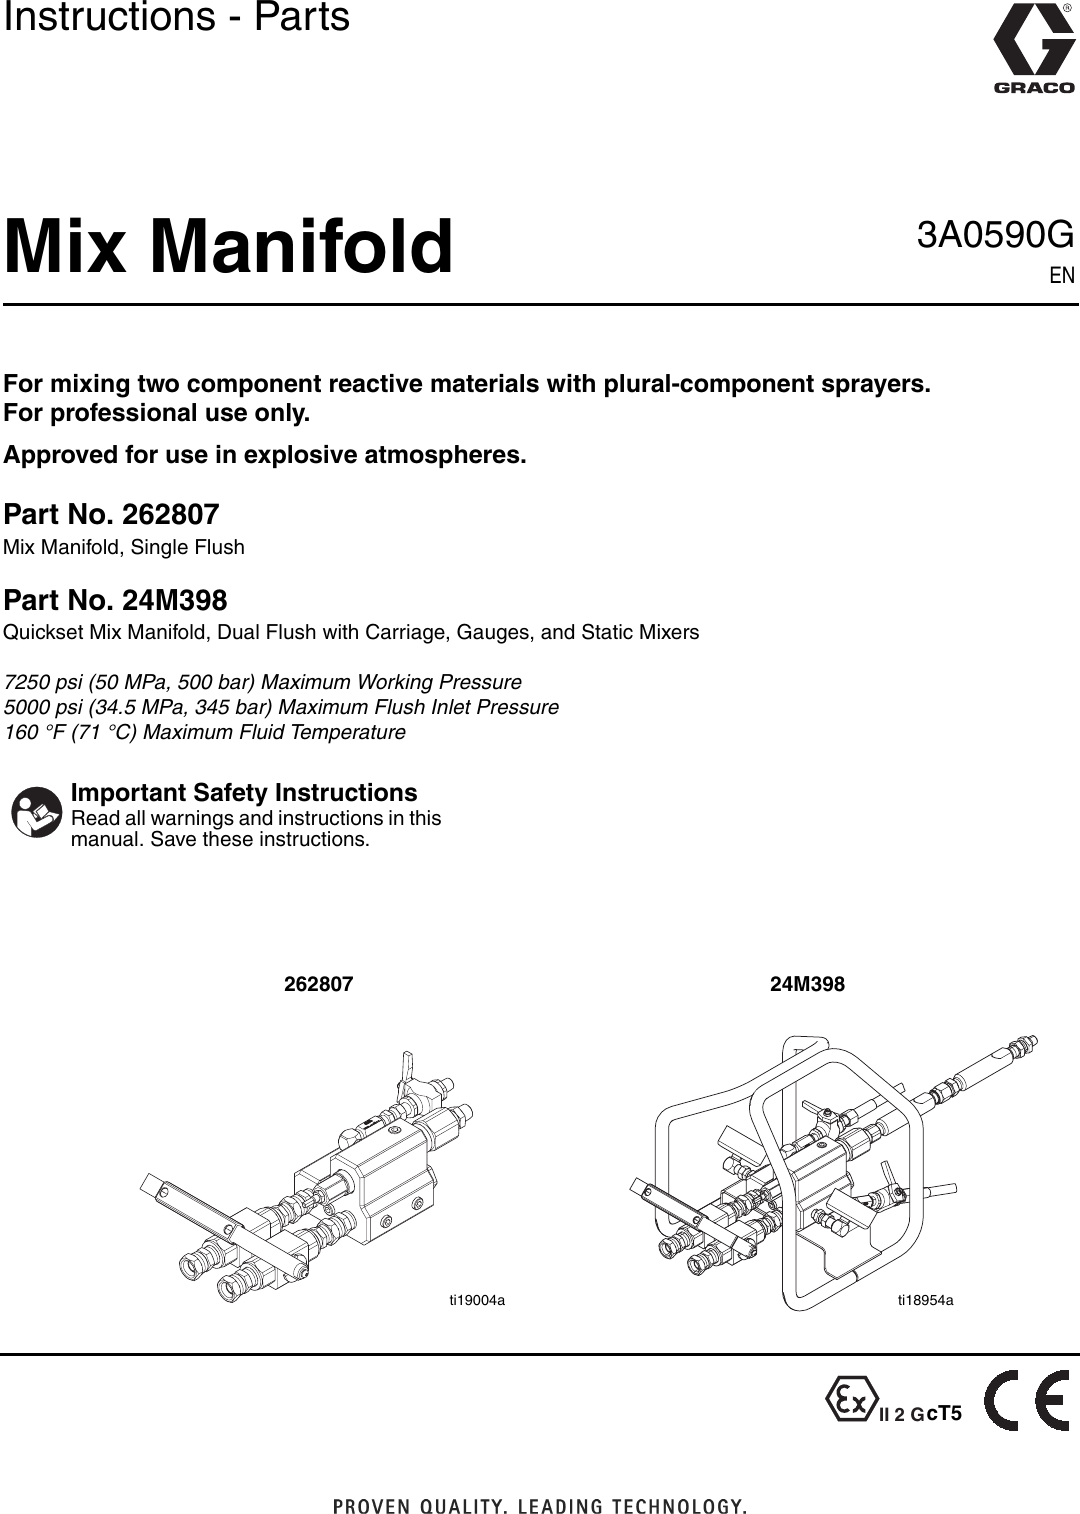 Henderson Manifold Manual Guide